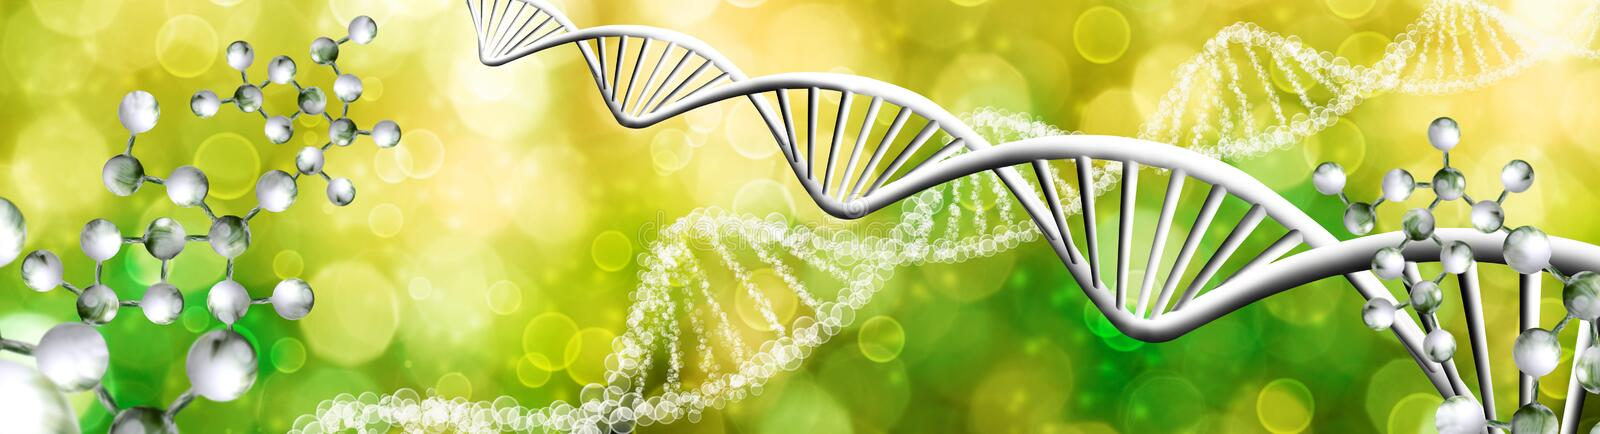 abstract image of dna chain closeup stock images